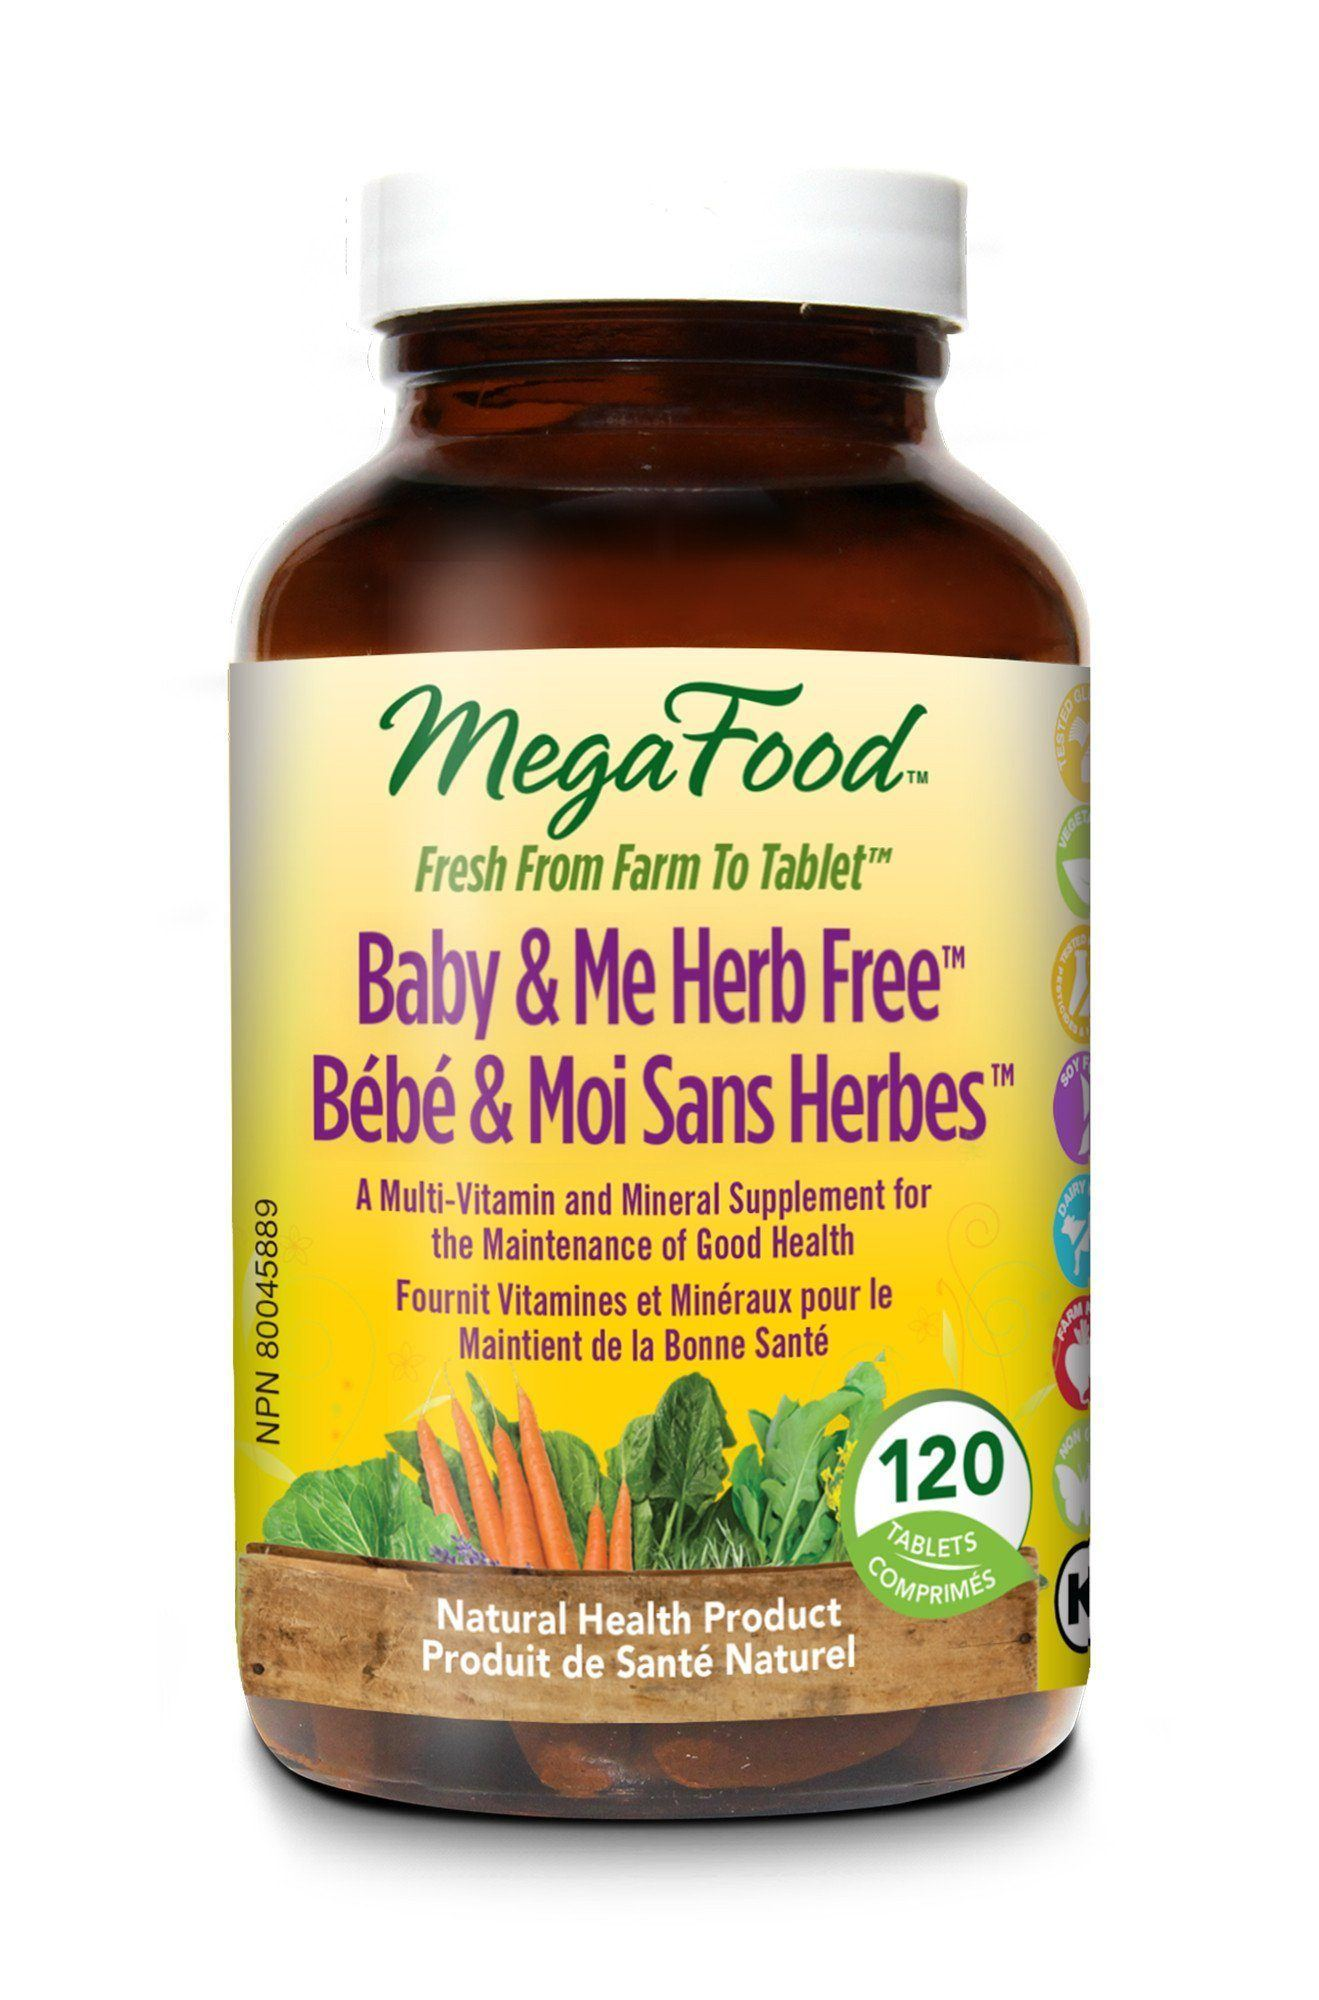 Supplements & Vitamins - Mega Food - Baby & Me Herb Free, 120 Caps